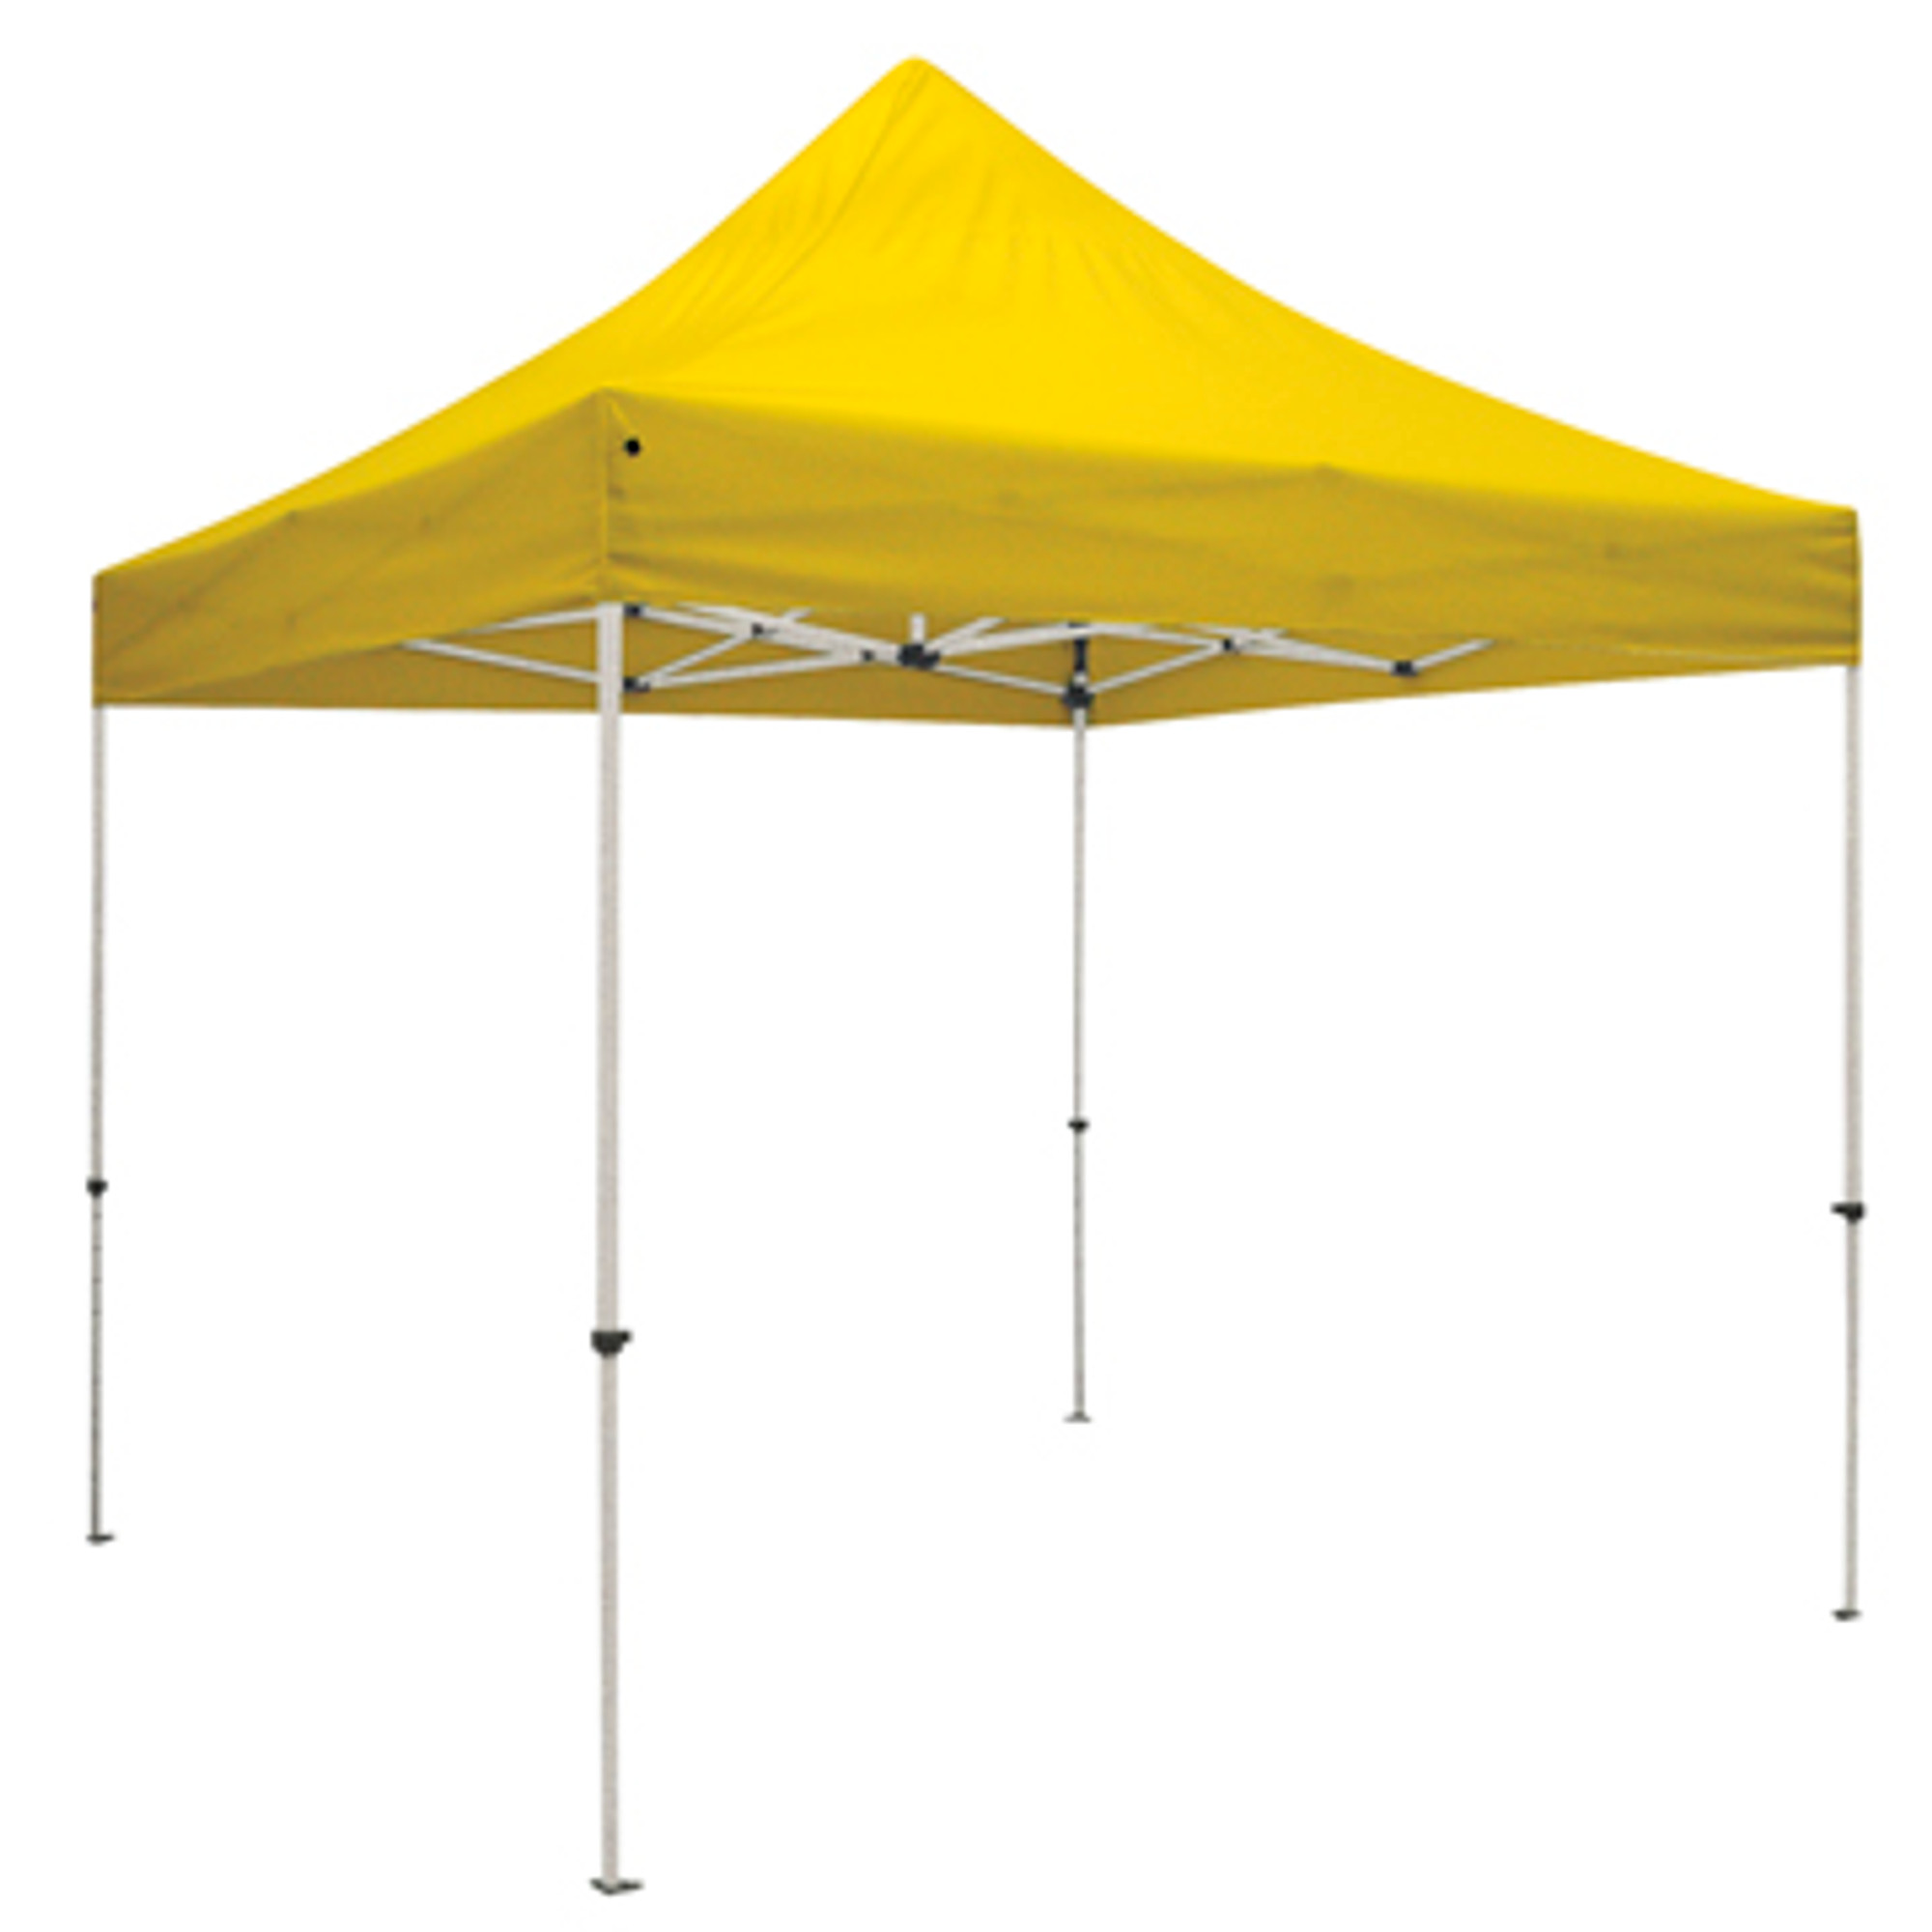 Unimprinted Blank Event 10x10 Pop Up Tent